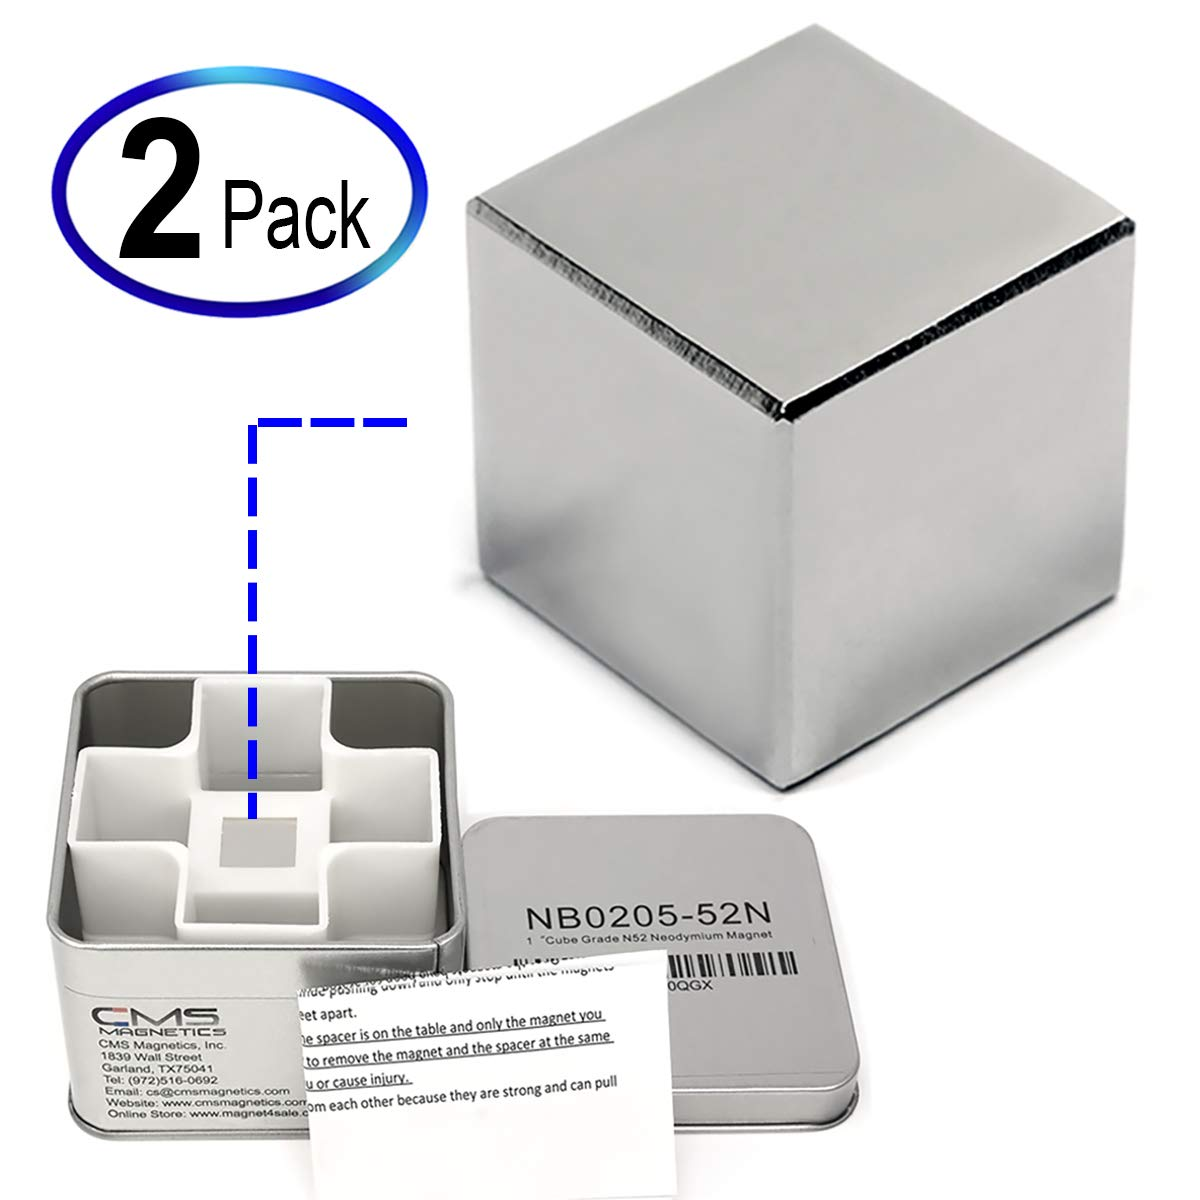 1'' Cube Neodymium Rare Earth Magnets - Stud Finders & Sciences - 2 Pieces and Packed in Two Individual Tin Boxes